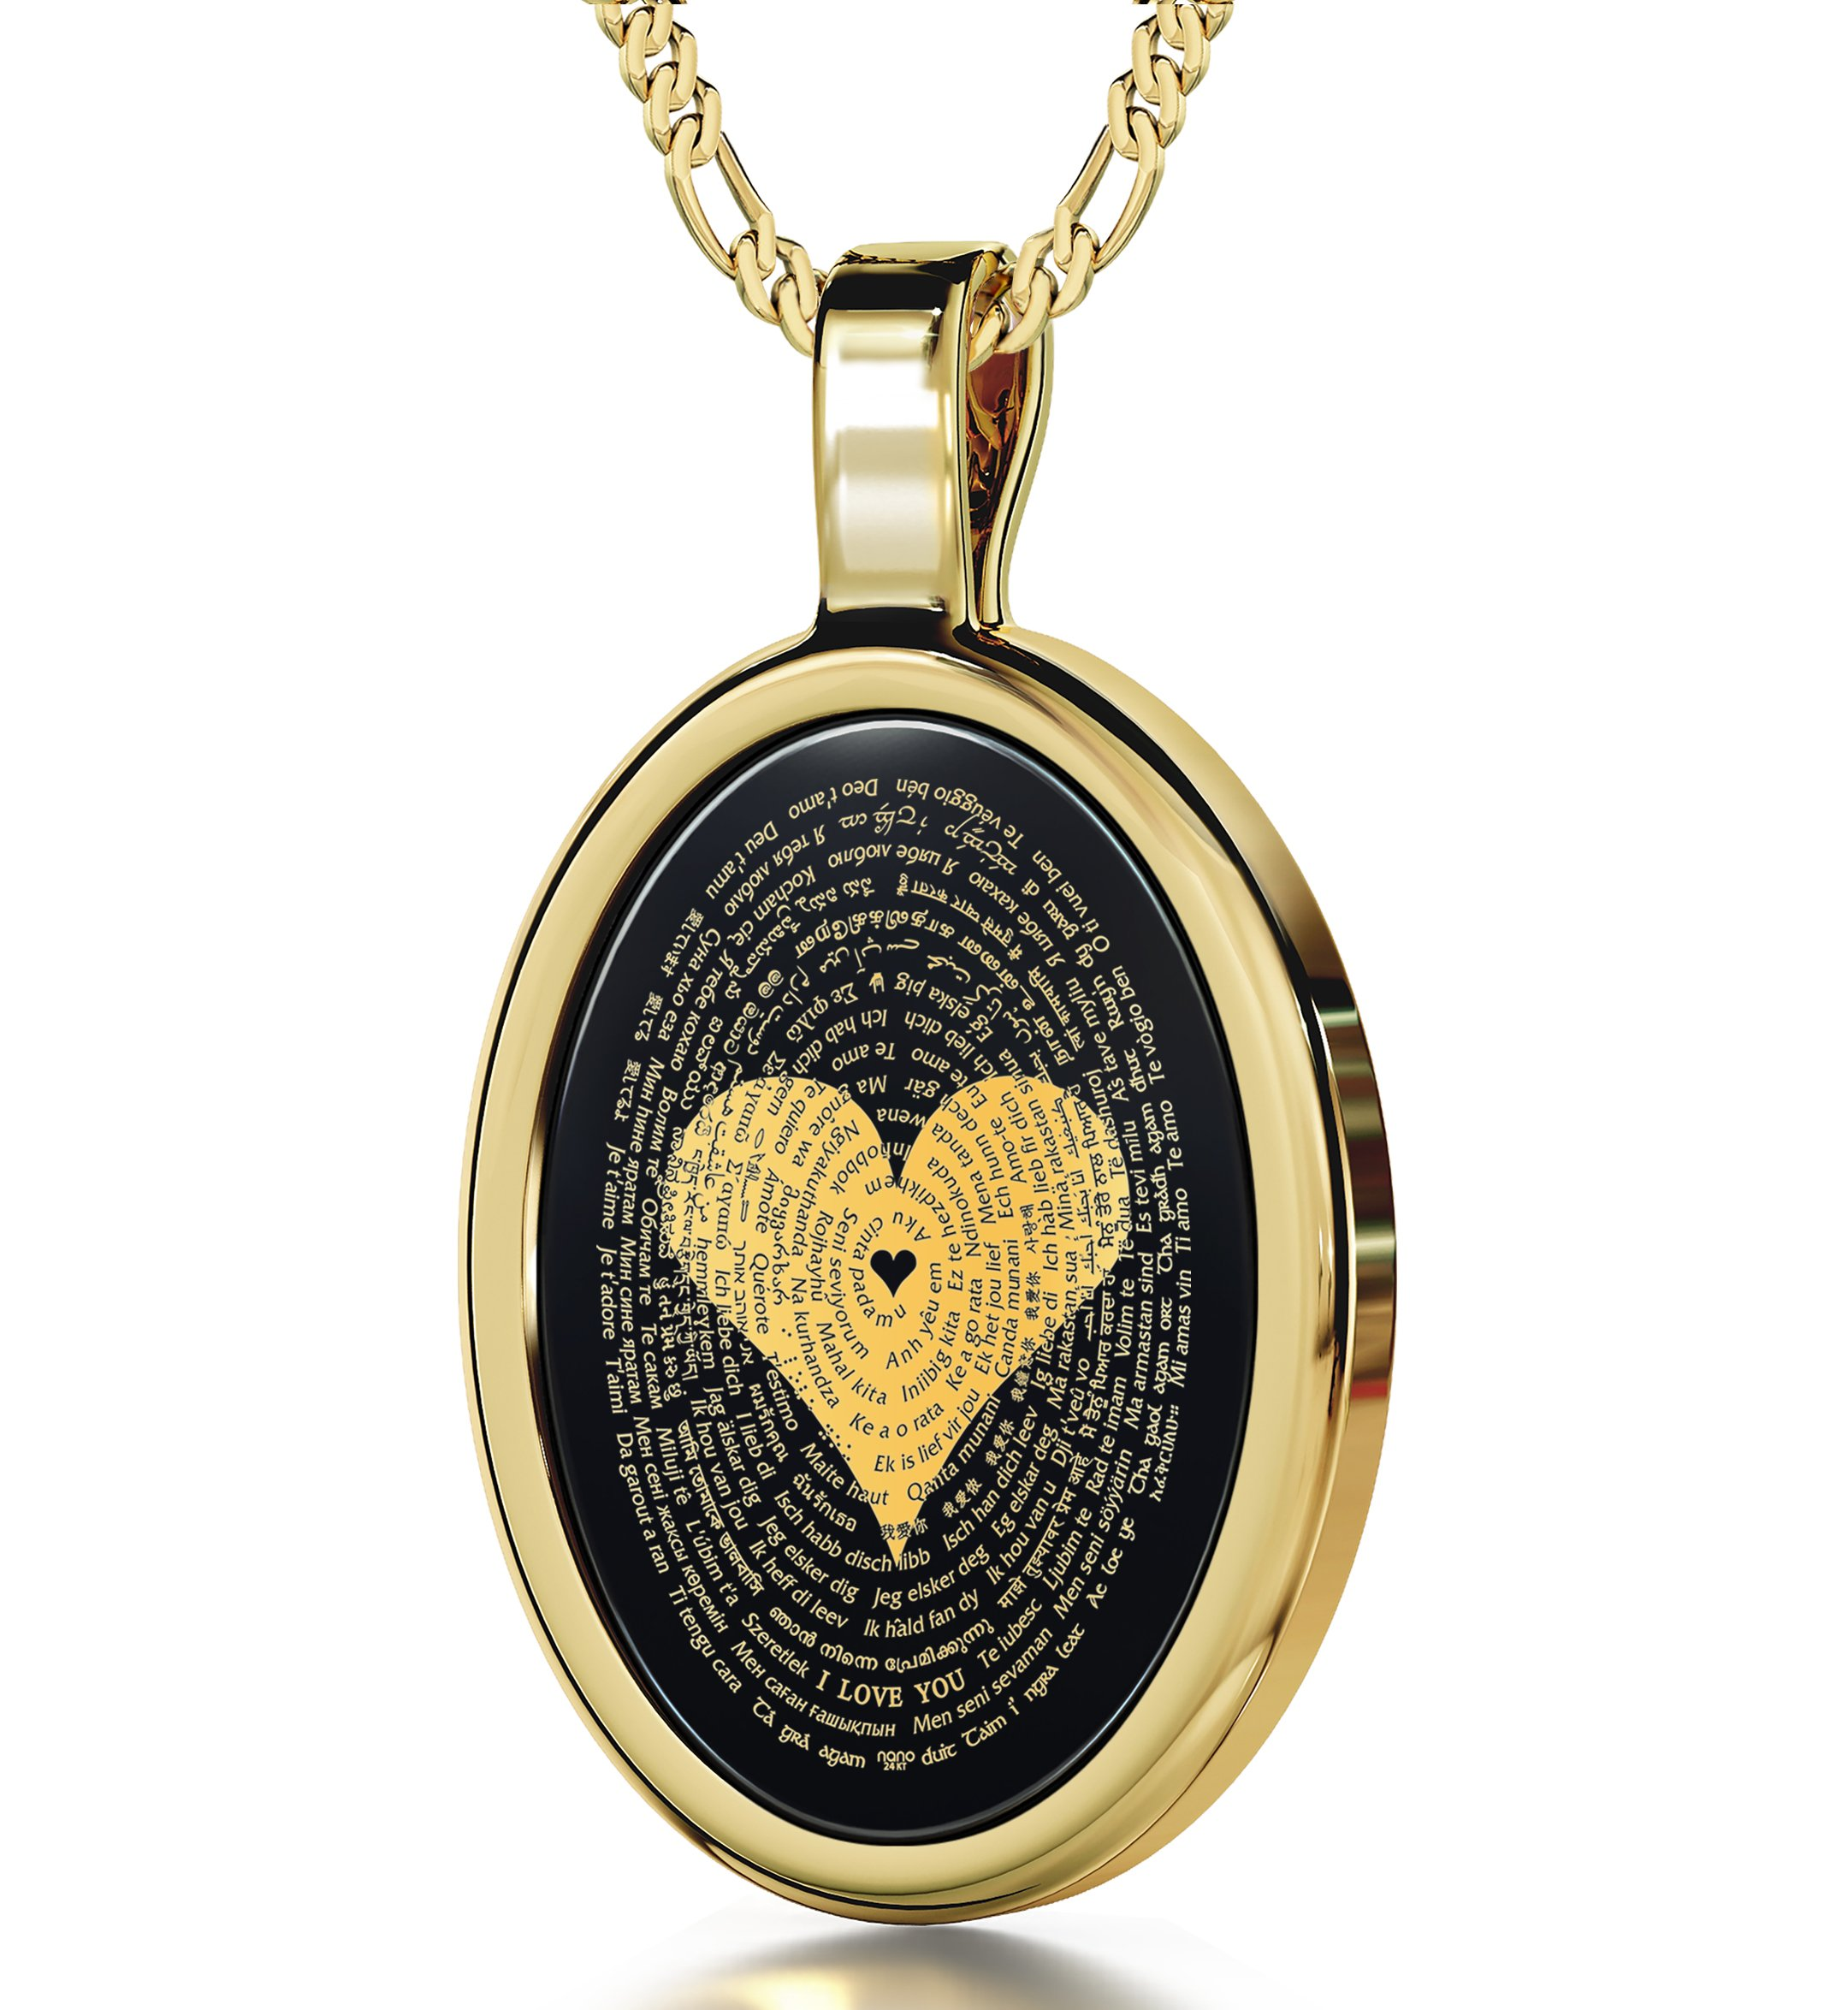 Gold Plated I Love You Necklace 24k Gold Inscribed in 120 Languages Onyx Pendant, 20'' Gold Filled Chain by Nano Jewelry (Image #2)